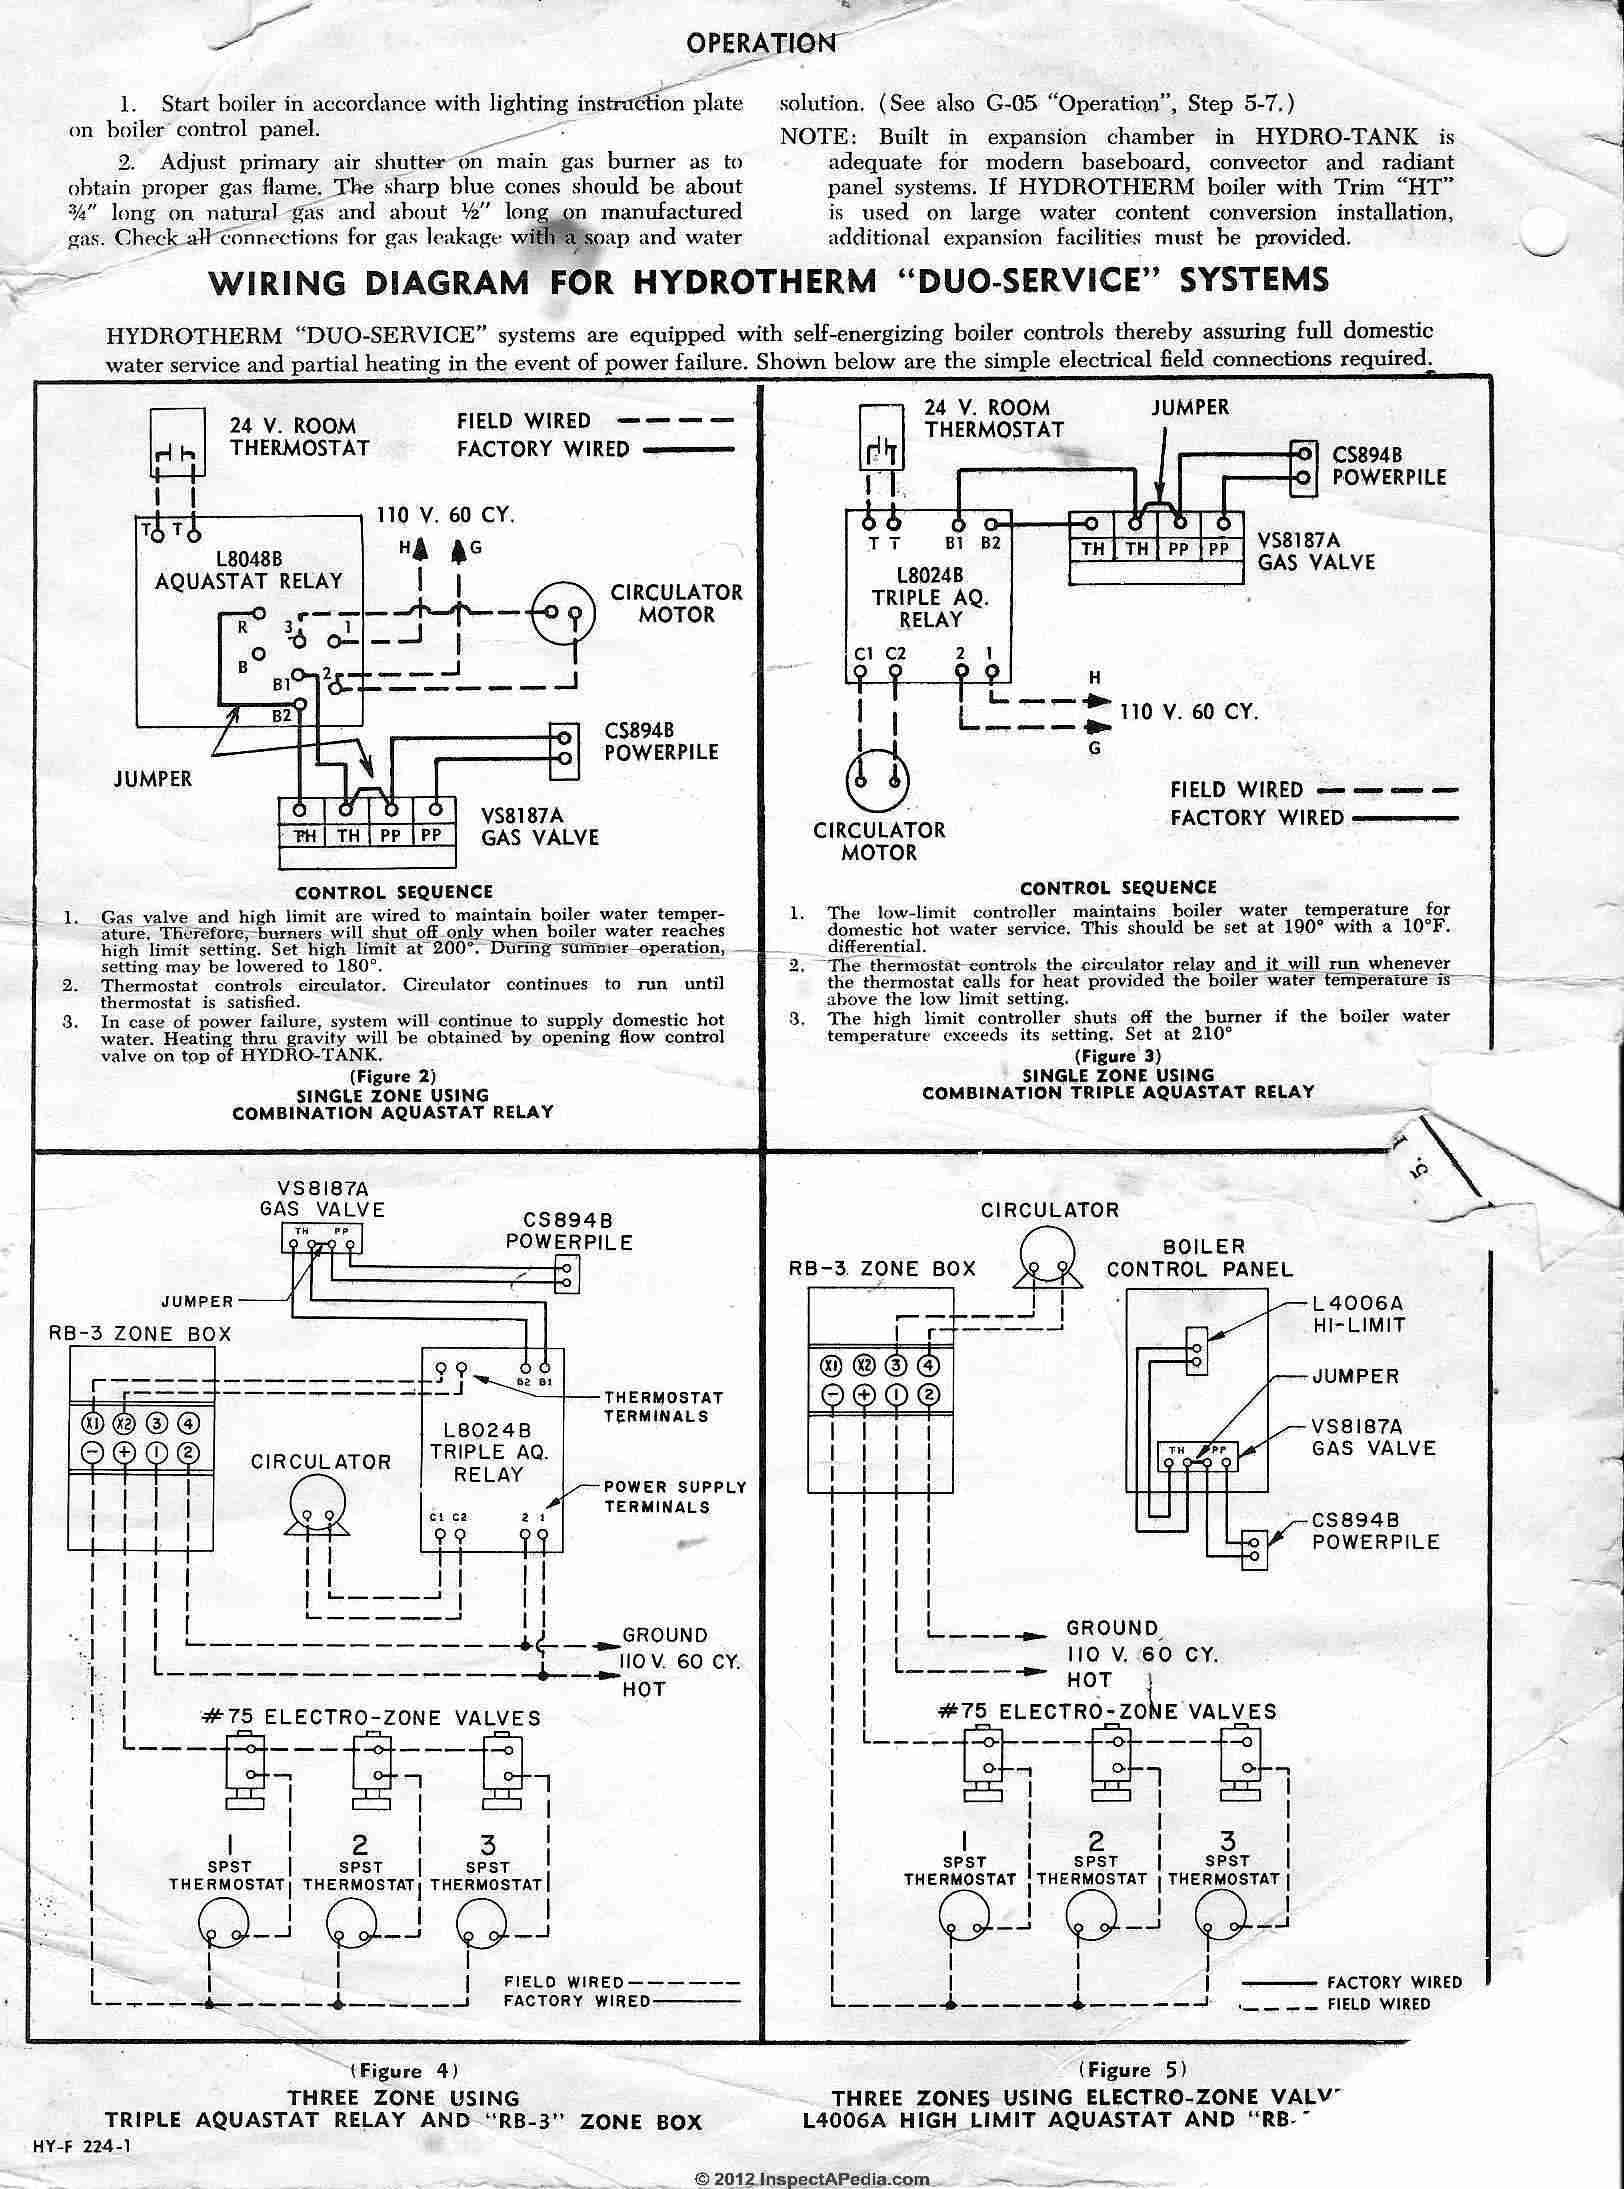 WRG-0704] Hardy Stove Relay Wiring Schematics on